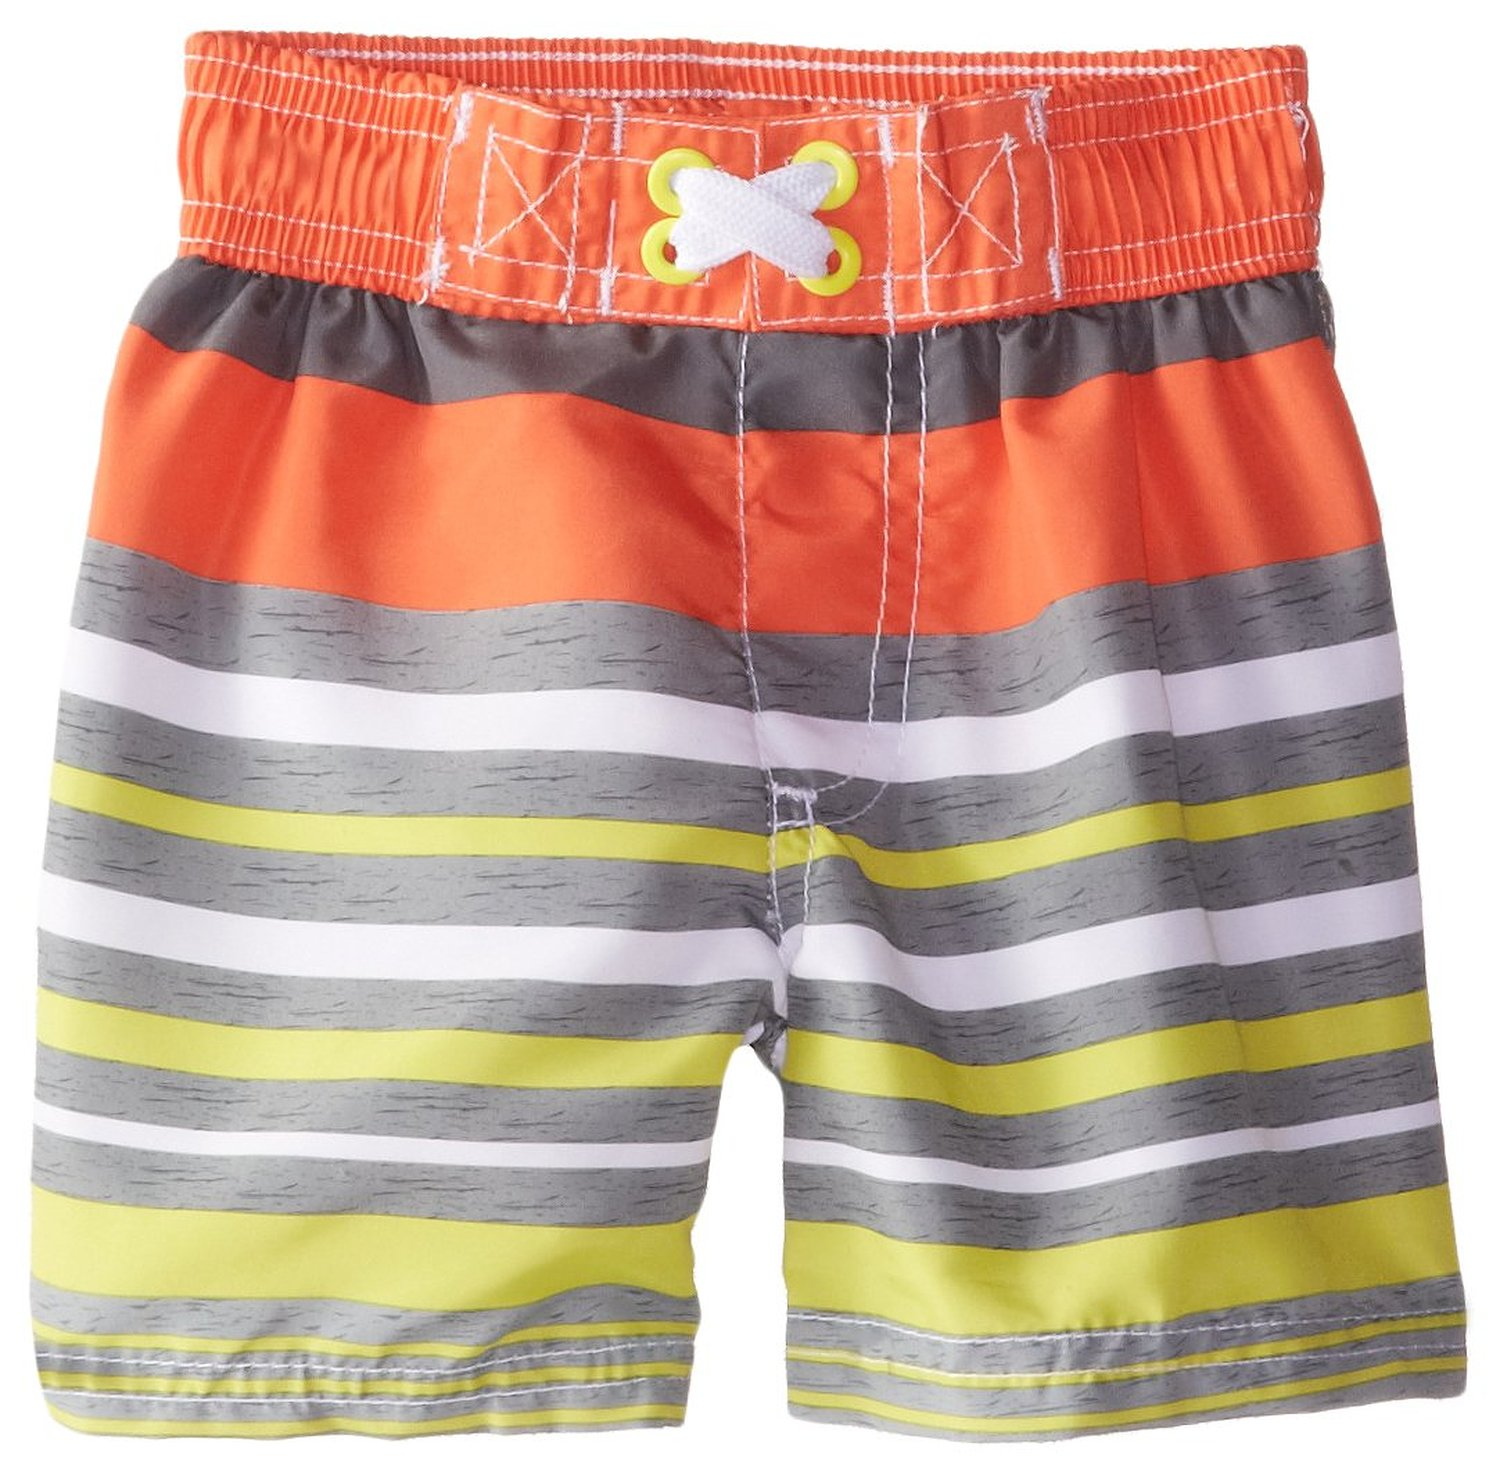 iXtreme Baby Boys' Multi-color All Over Stripes Rash Guard Swim Trunk Short